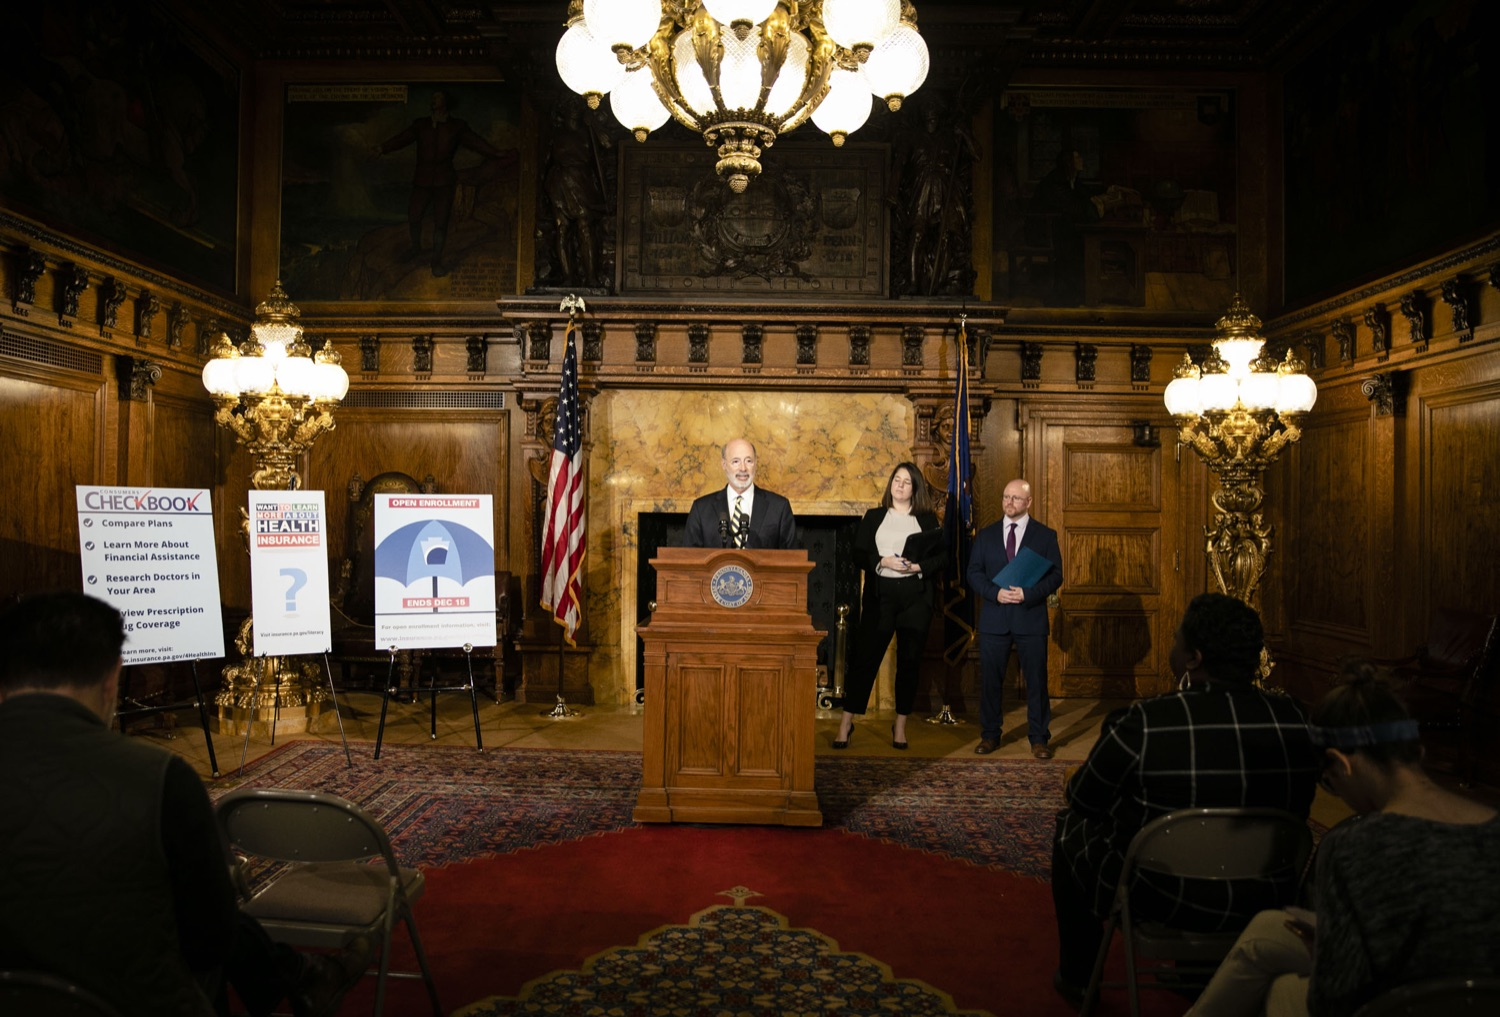 "<a href=""http://filesource.abacast.com/commonwealthofpa/photo/17564_GOV_aca_amb_001.jpg"" target=""_blank"">⇣ Download Photo<br></a>Governor Tom Wolf and Insurance Commissioner Jessica Altman advised Pennsylvanians that now is the time to buy health insurance on the federal exchange, healthcare.gov, as open enrollment continues for Affordable Care Act (ACA) plans through Dec. 15. Consumers have more options in Pennsylvania, and many will find they qualify for subsidies. November 7, 2019. Harrisburg, PA."